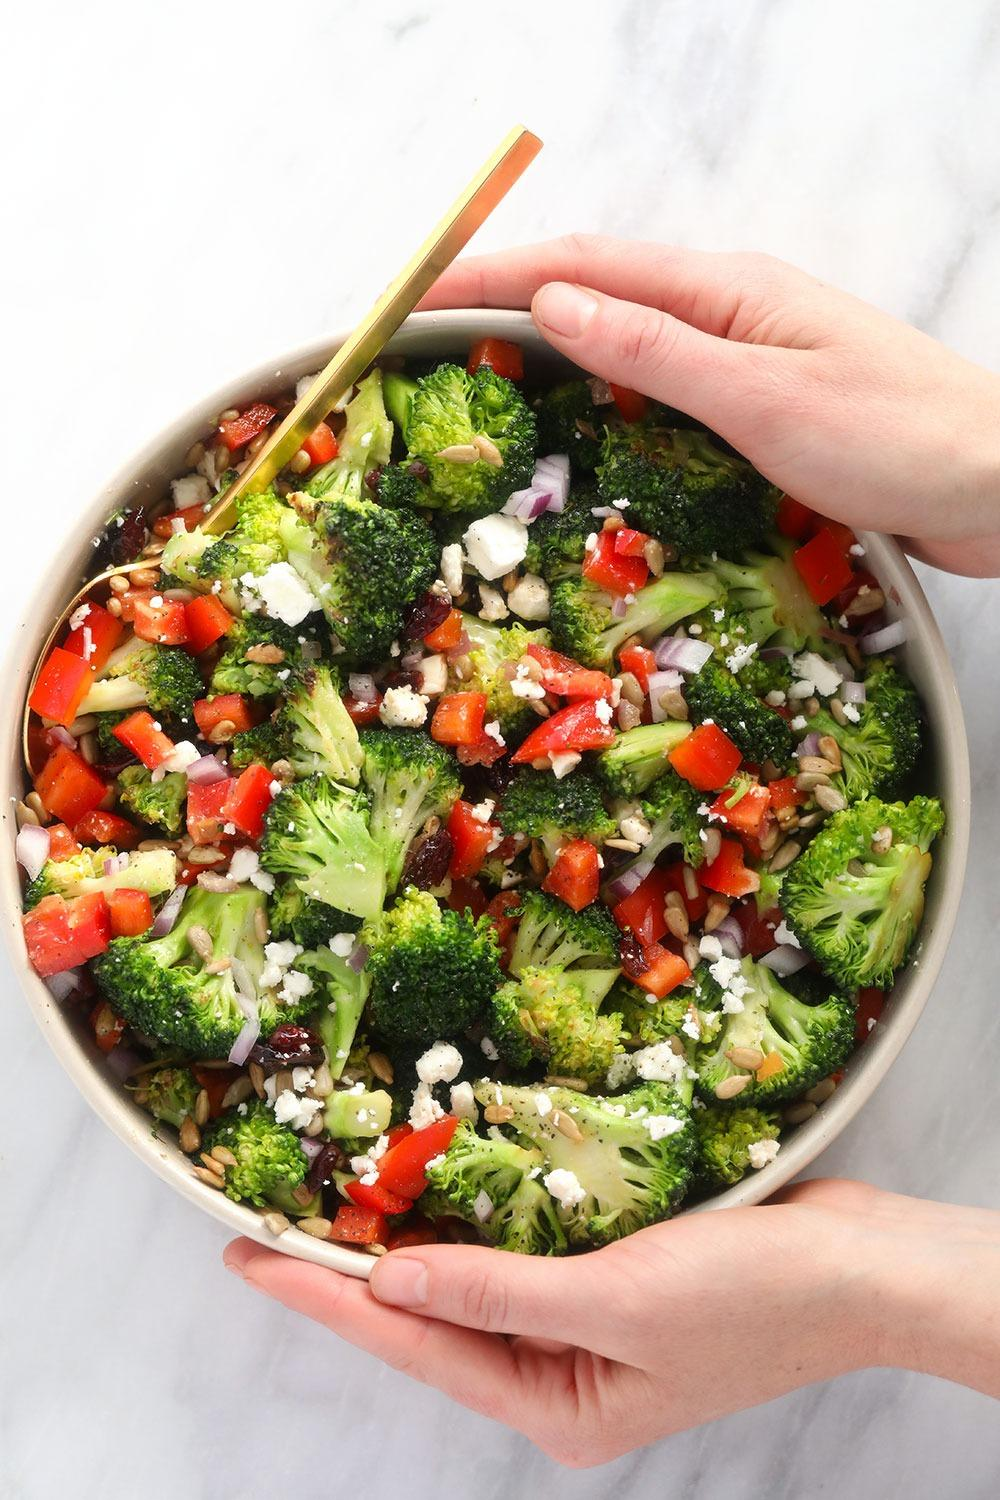 Picture with tags: HD, Interesting, Cooking, Health